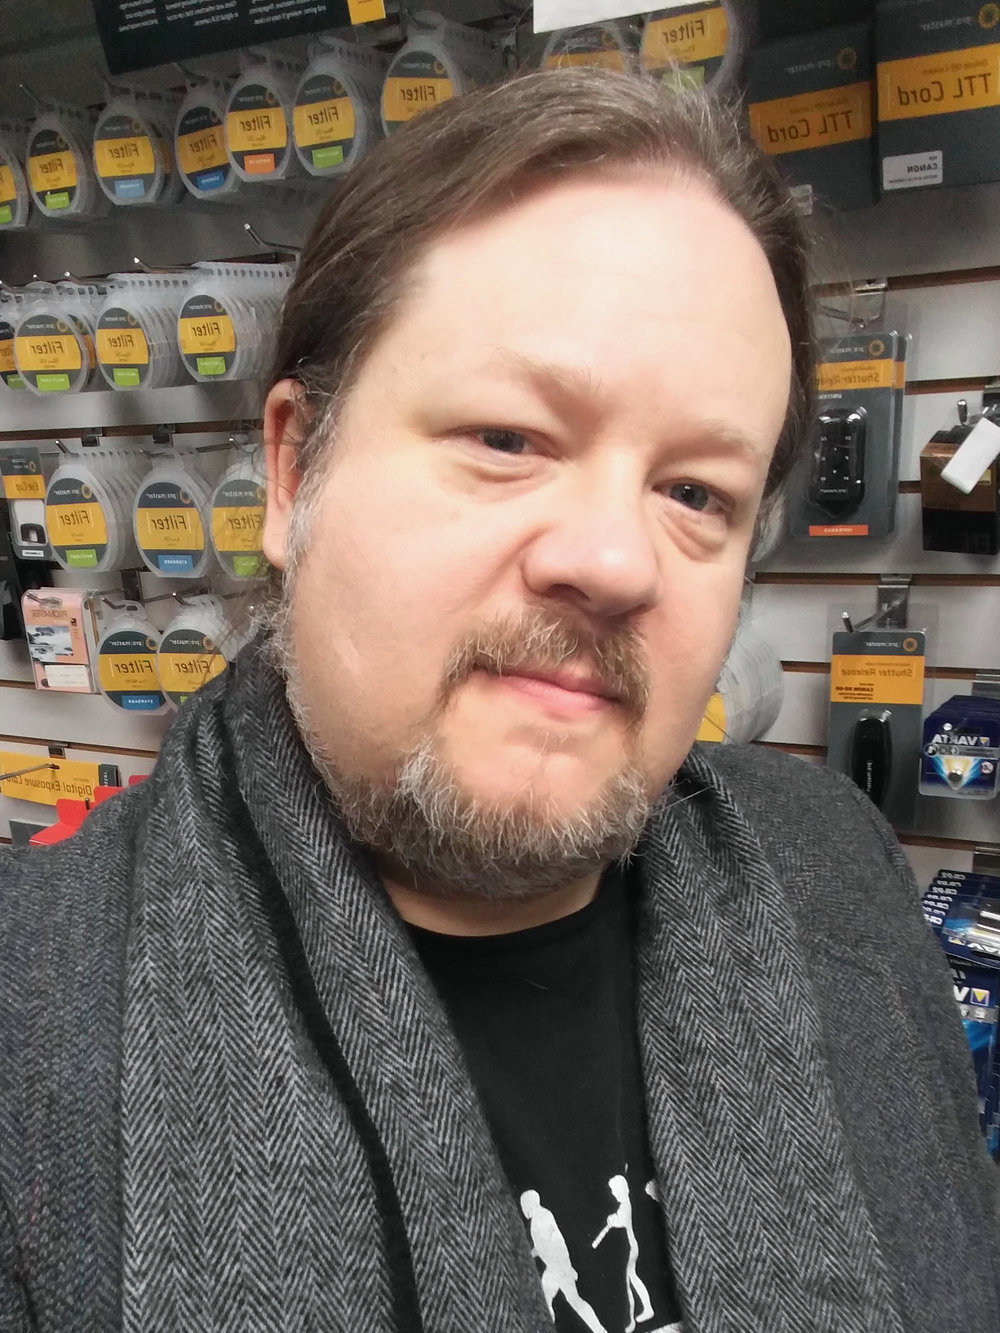 Kevin MacNutt, Store Manager